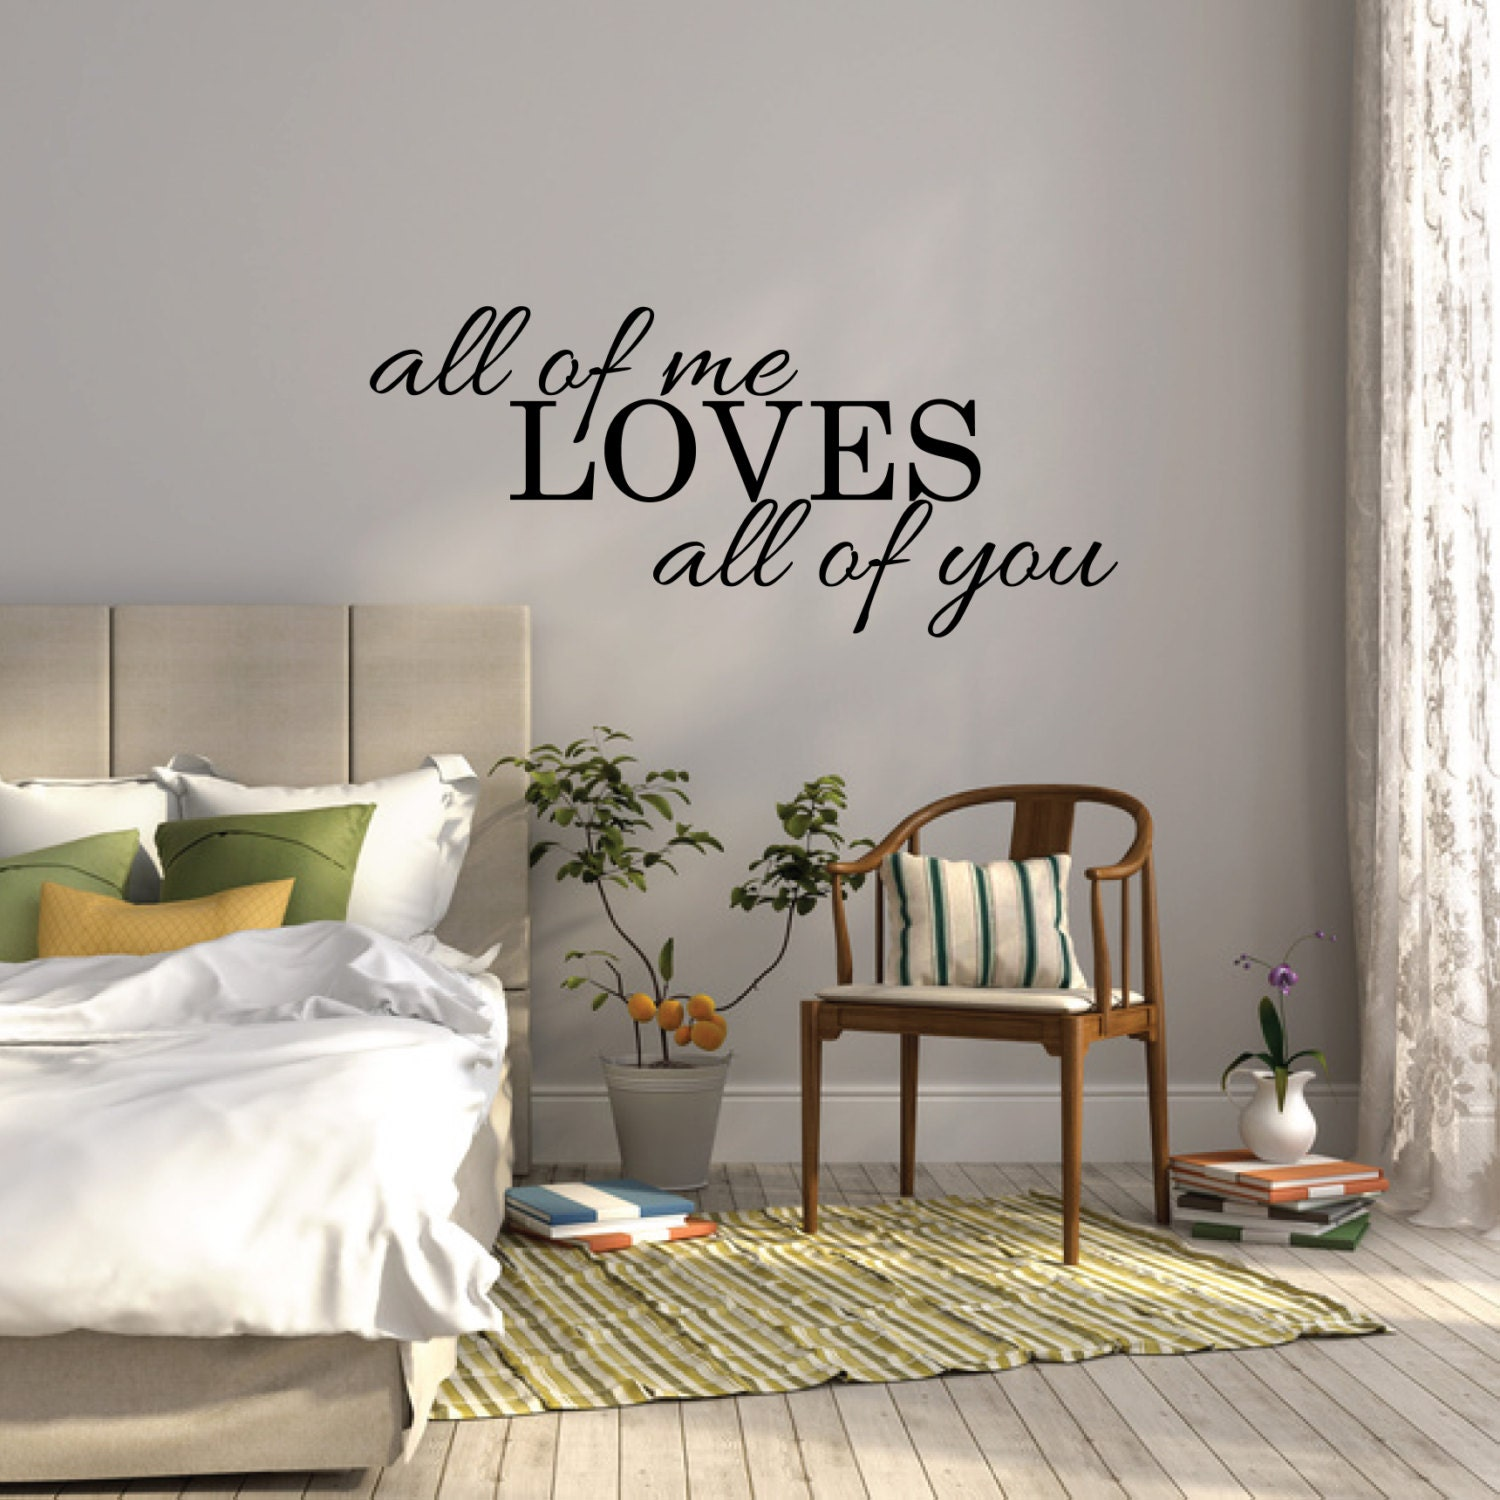 Wall E Room Decor : All of me loves you wall sticker bedroom decal